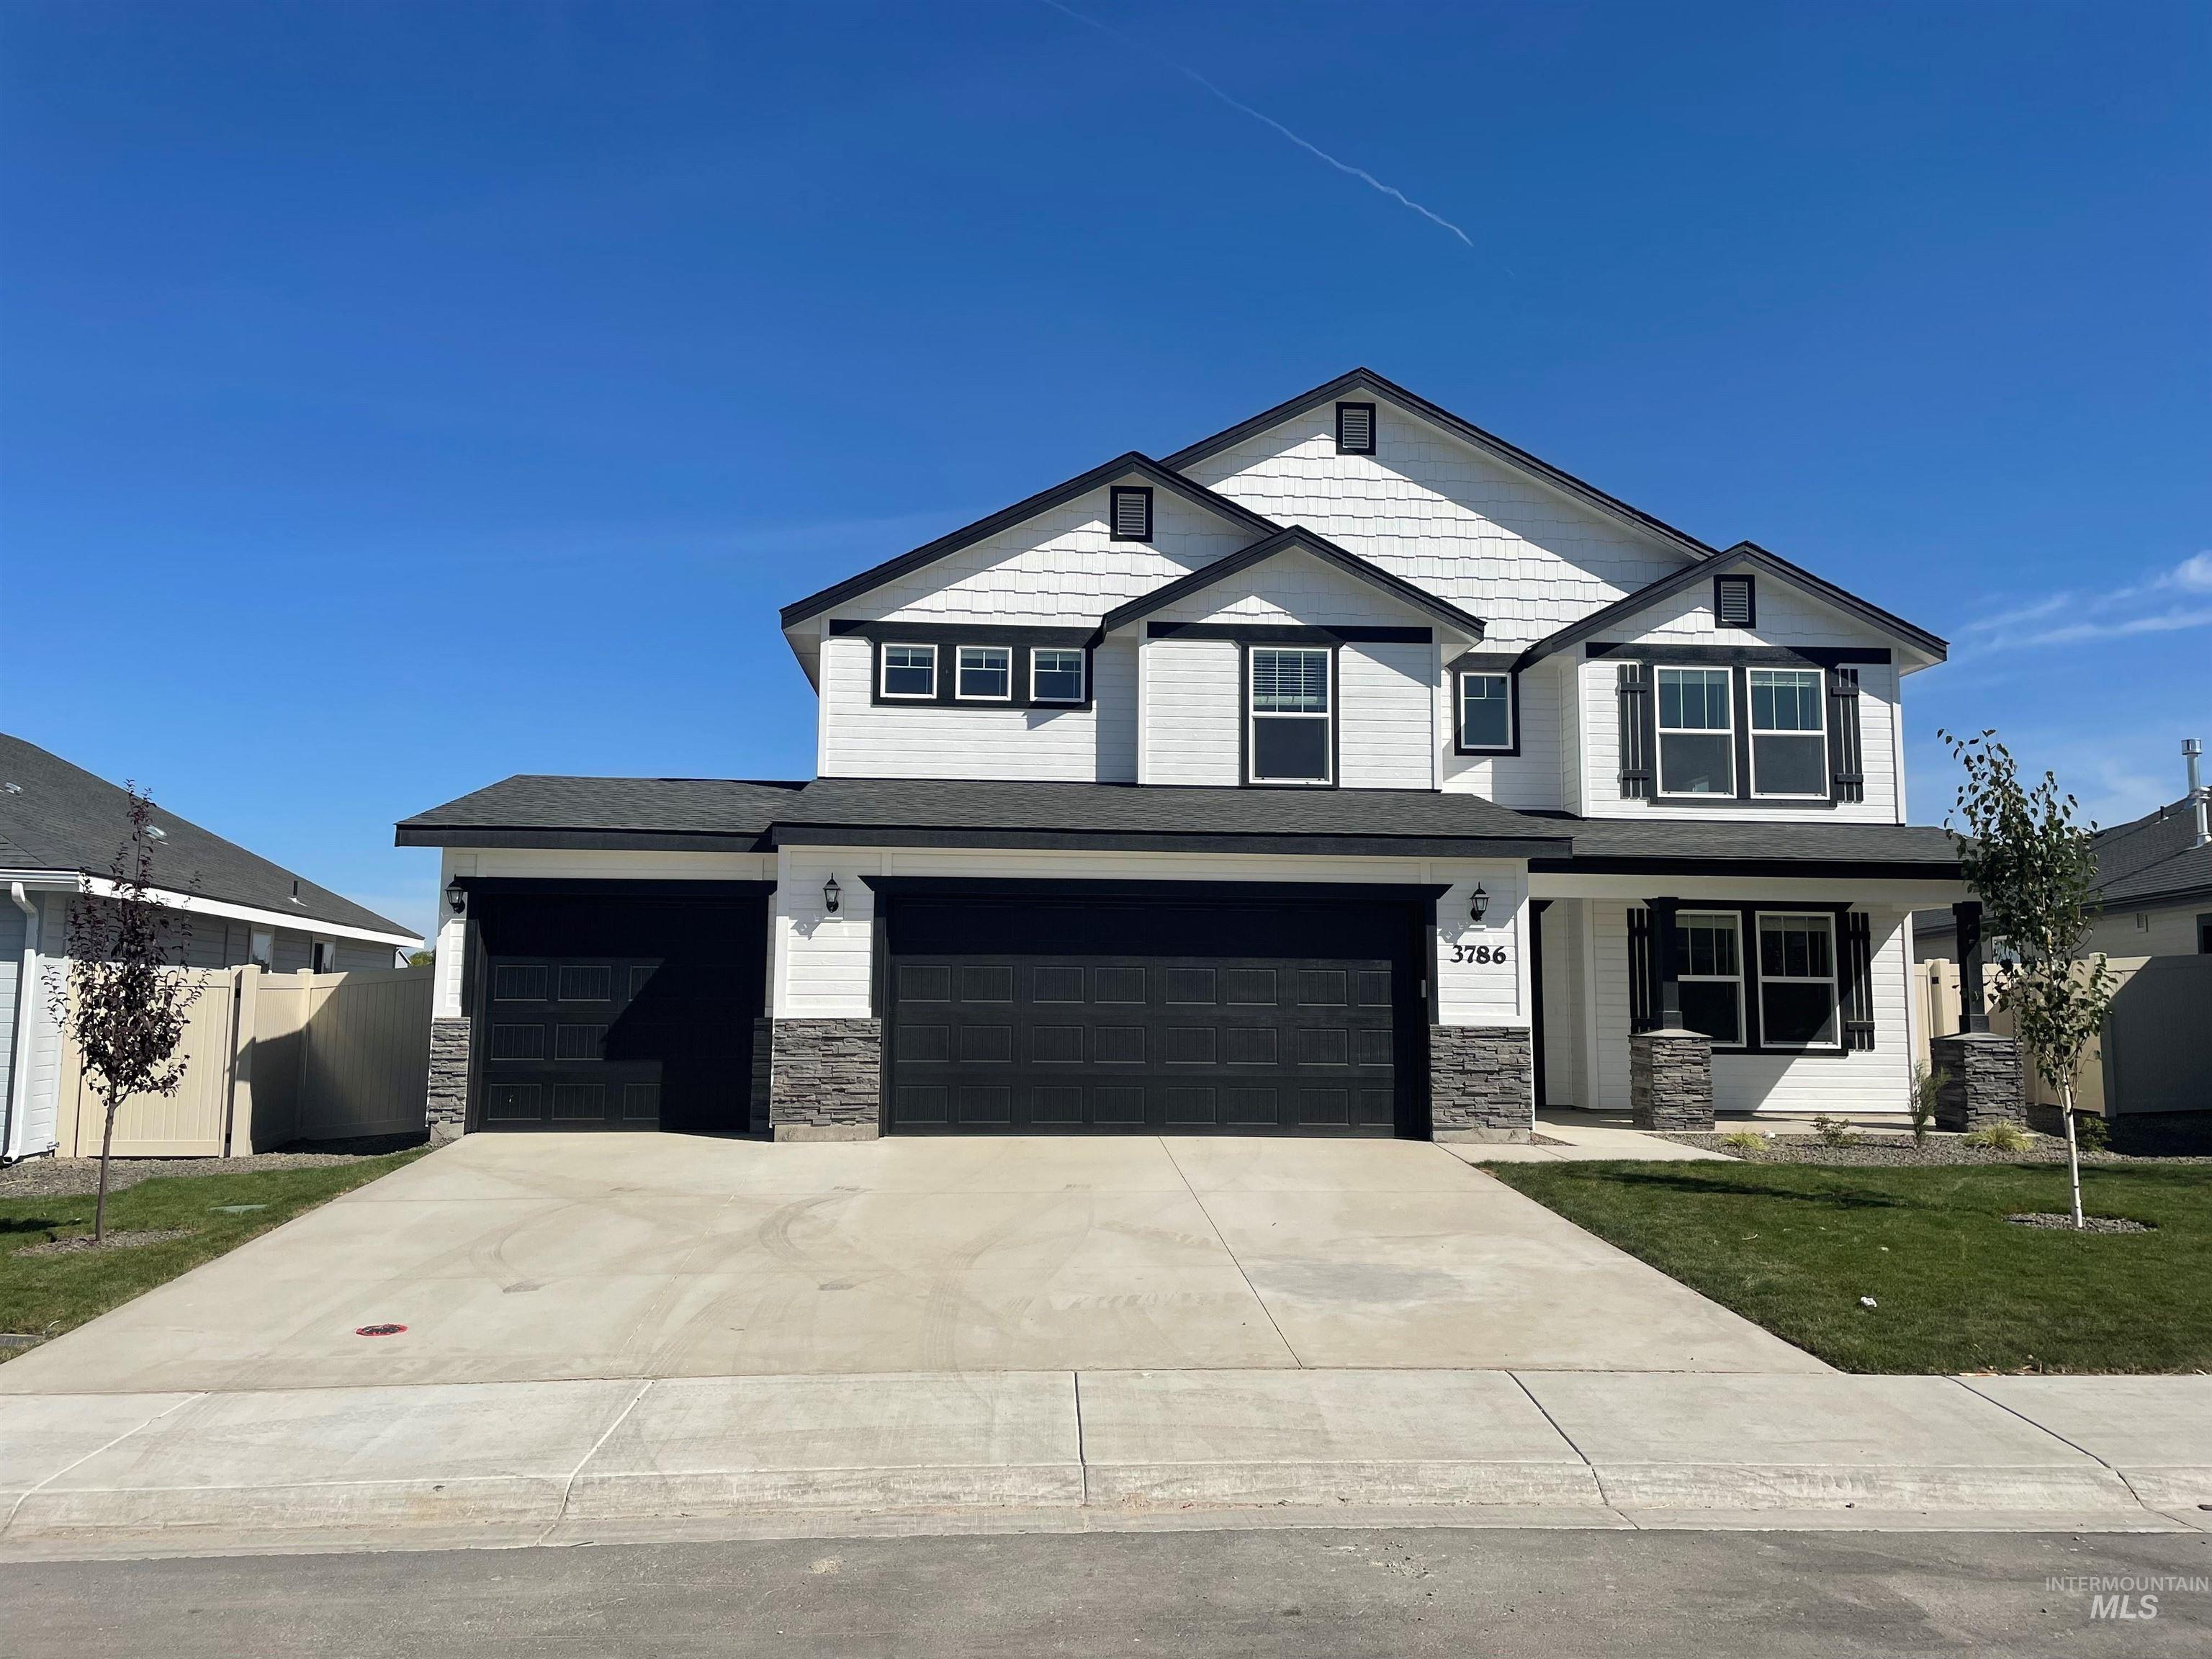 Pre-sold Garnet with Craftsman Elevation. Photo Similar. This home features large covered back patio, gas fireplace, upgraded cabinets, blinds, sheetrock wrapped windows, gas range, stainless steel appliances, and so much more.